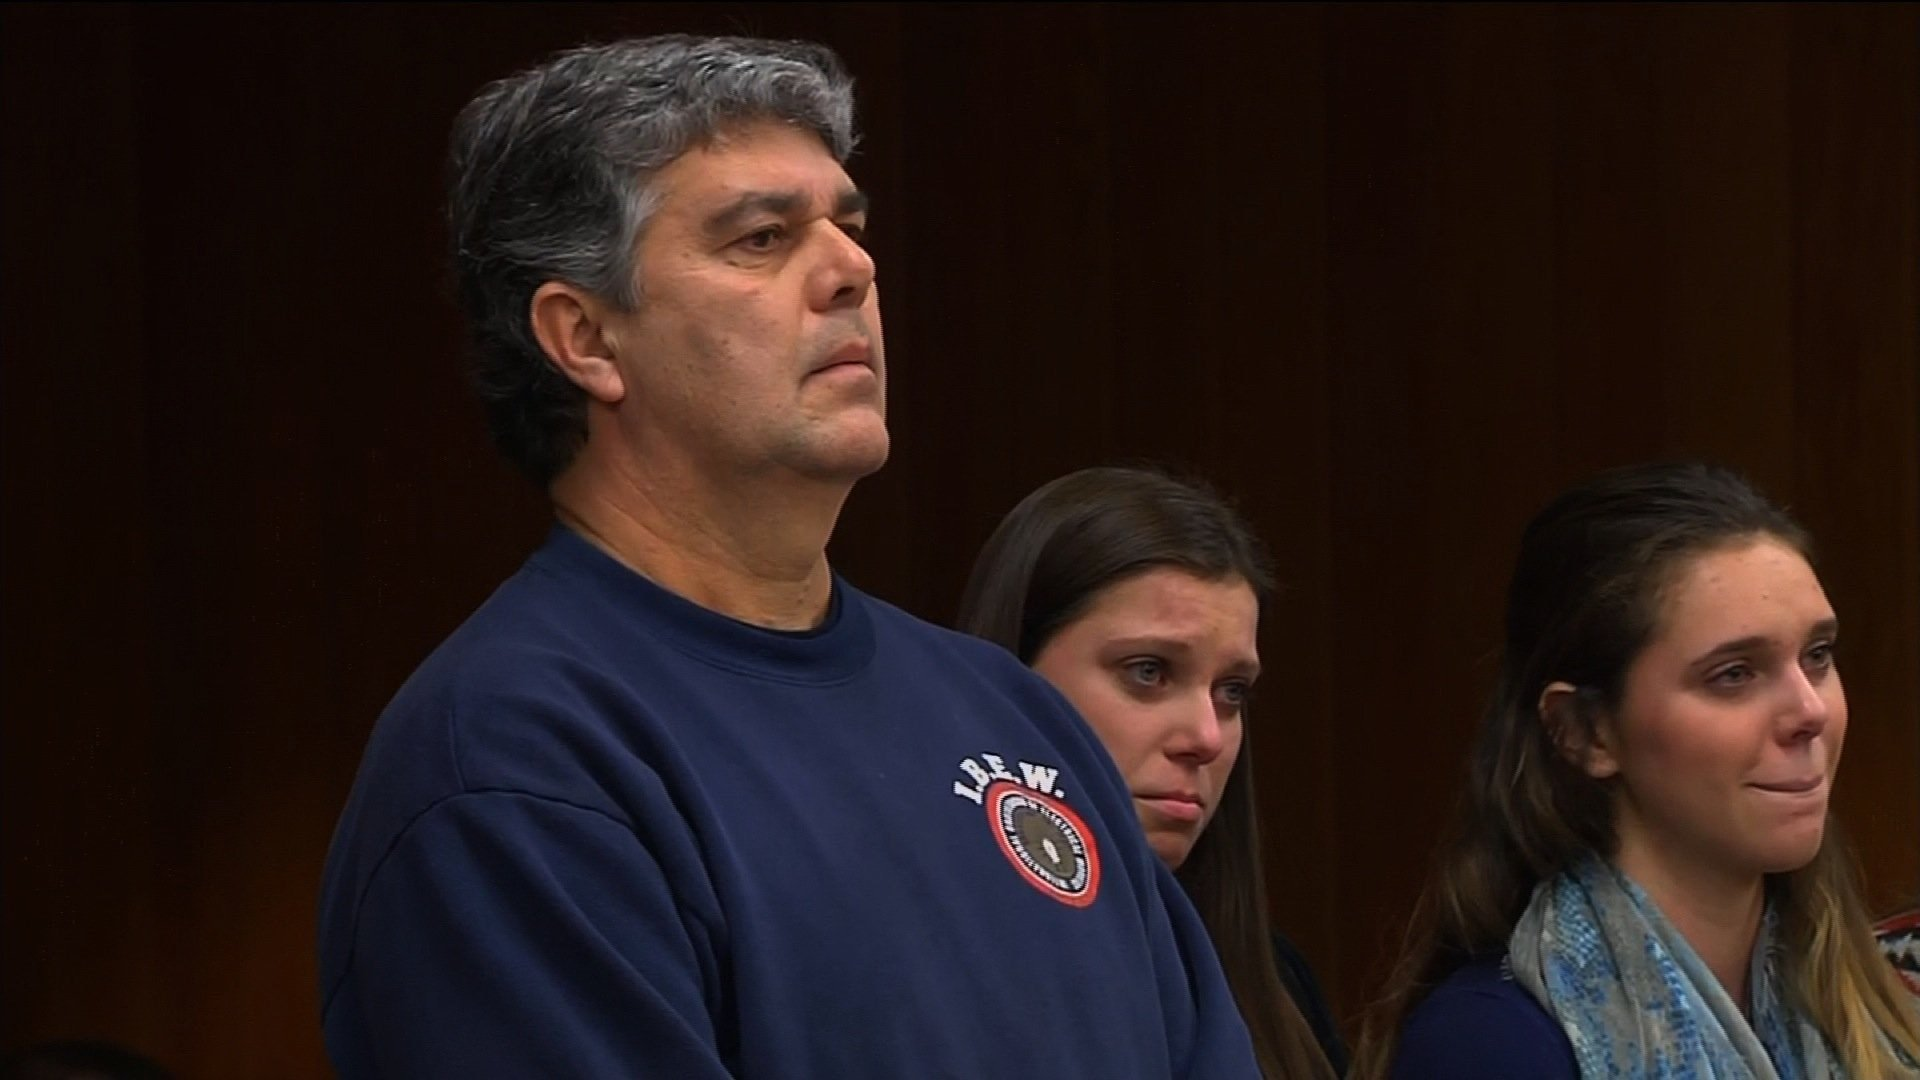 Dad Who Attacked Larry Nassar Donates $31k to Charity